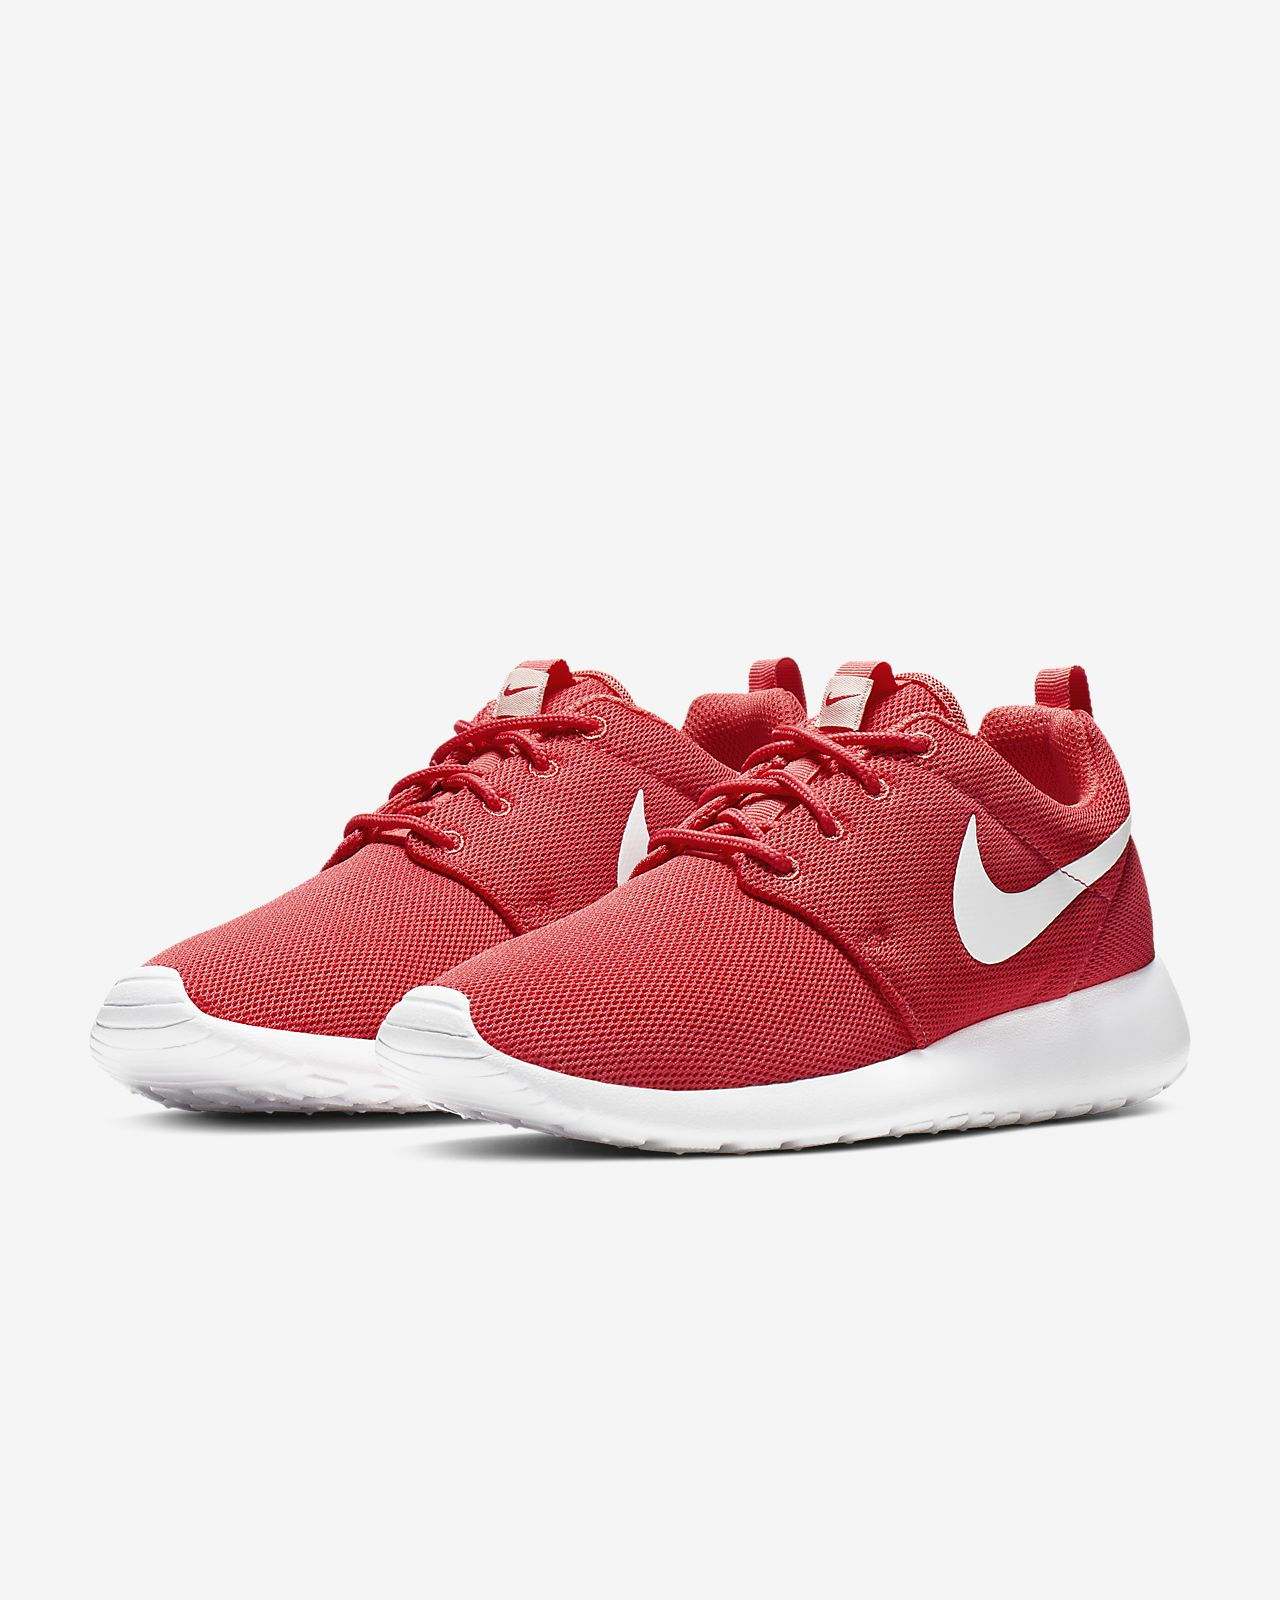 c9fb8ffad5479 Low Resolution Nike Roshe One Women s Shoe Nike Roshe One Women s Shoe